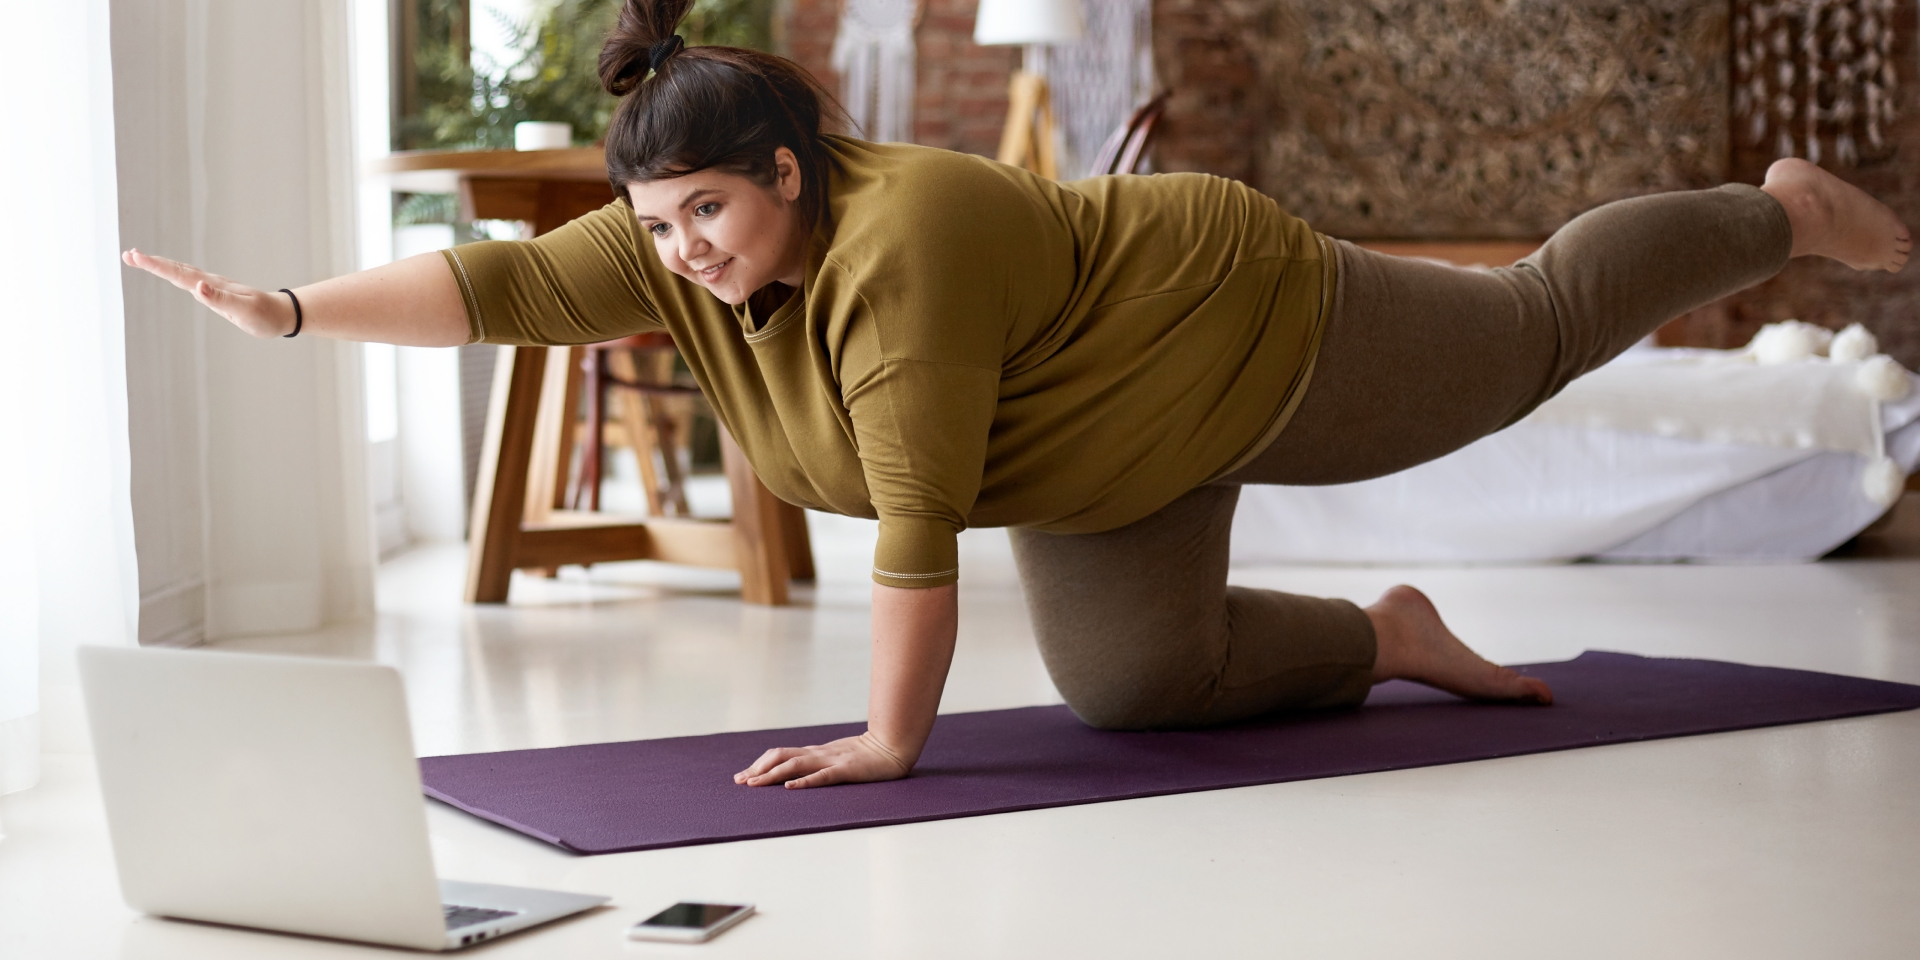 Woman on mat, doing a yoga move as demonstrated on her computer